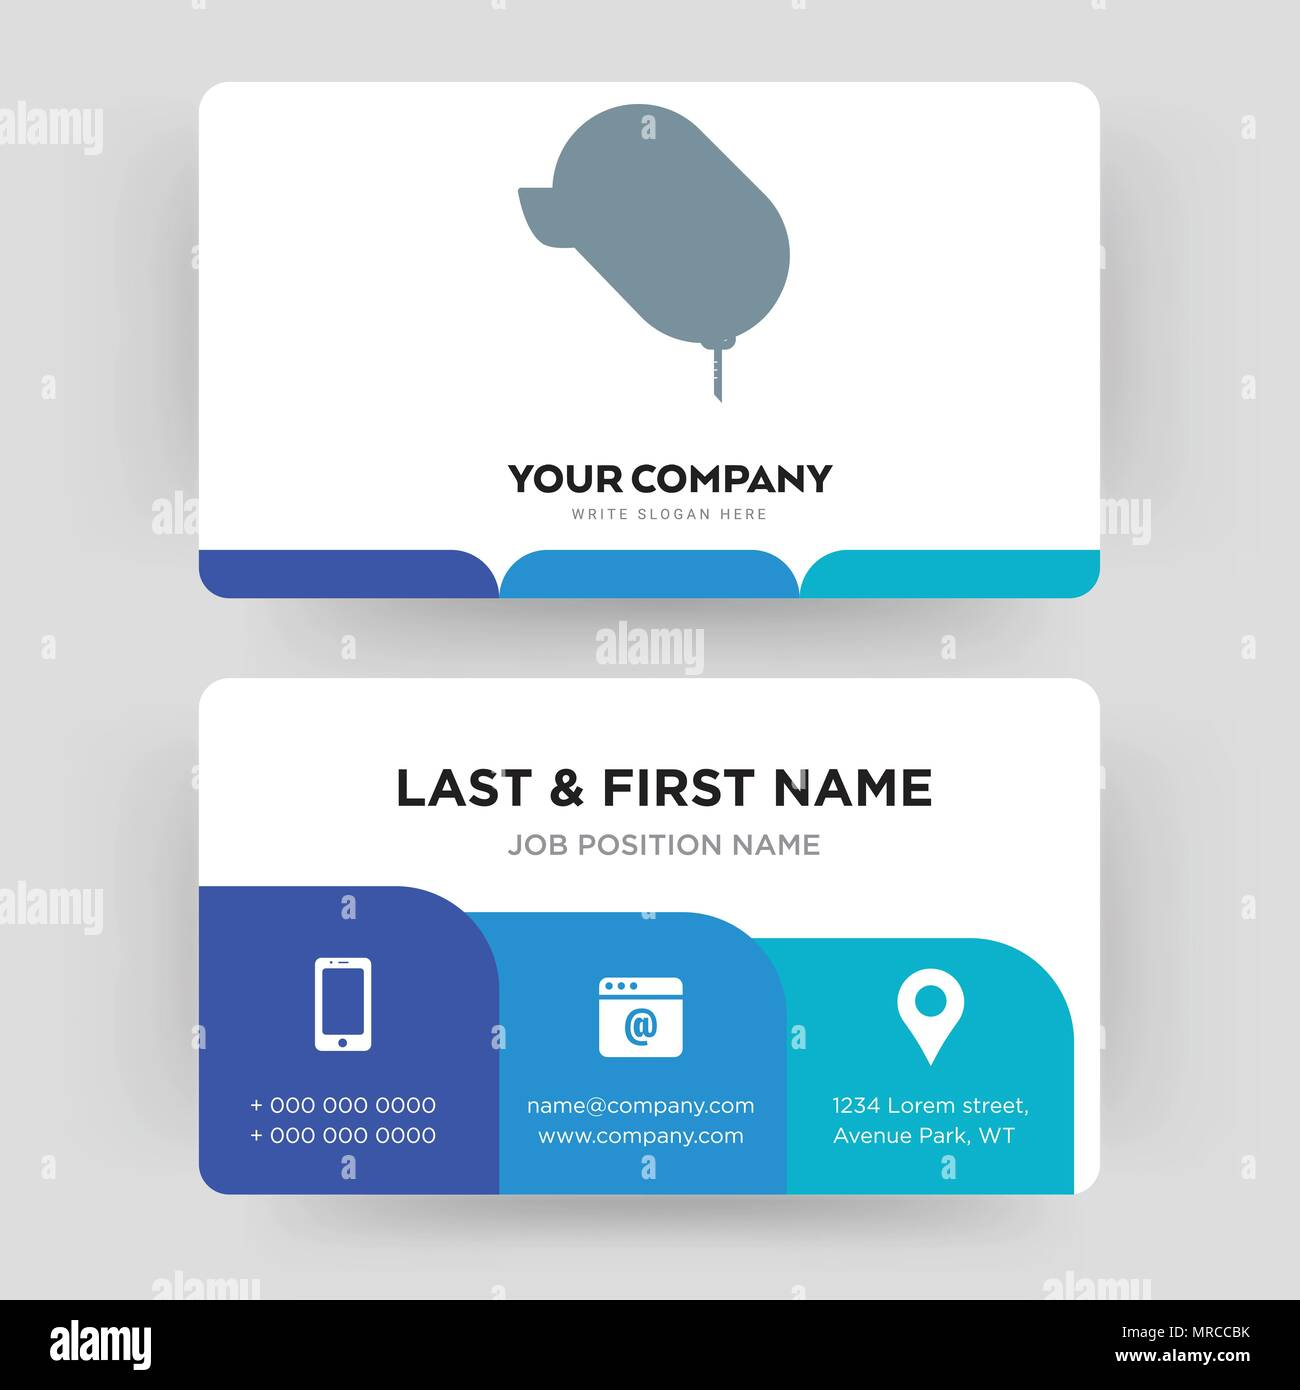 Car Dealer Business Card Design Template Visiting For Your Company